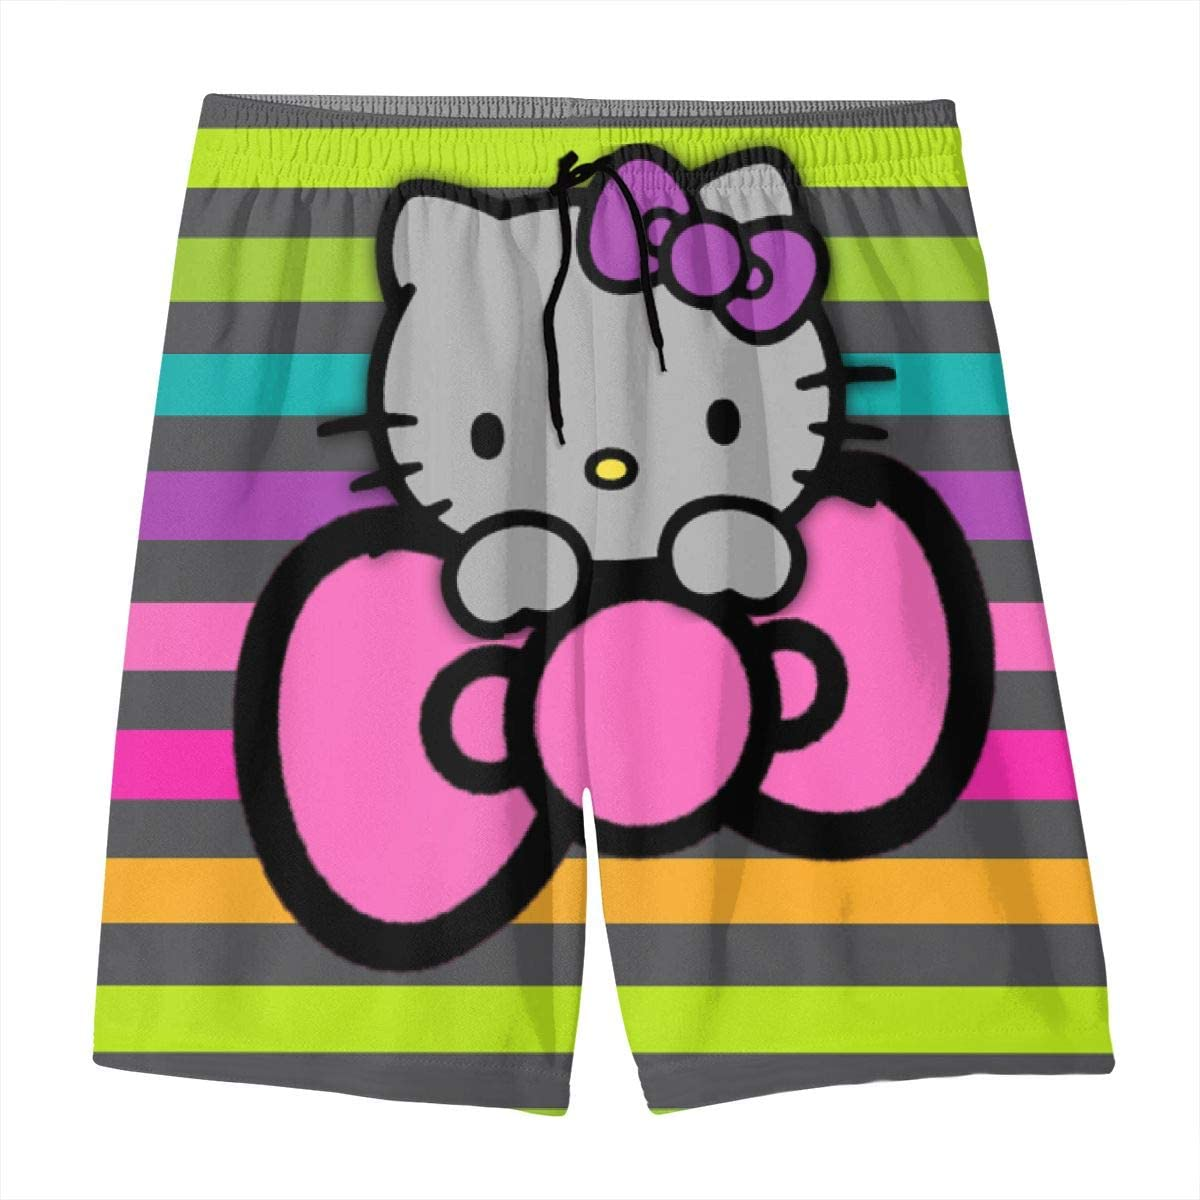 Swim Trunks Rainbow Hello Kitty Quick Dry Beach Board Shorts Bathing Suit with Side Pockets for Teen Boys